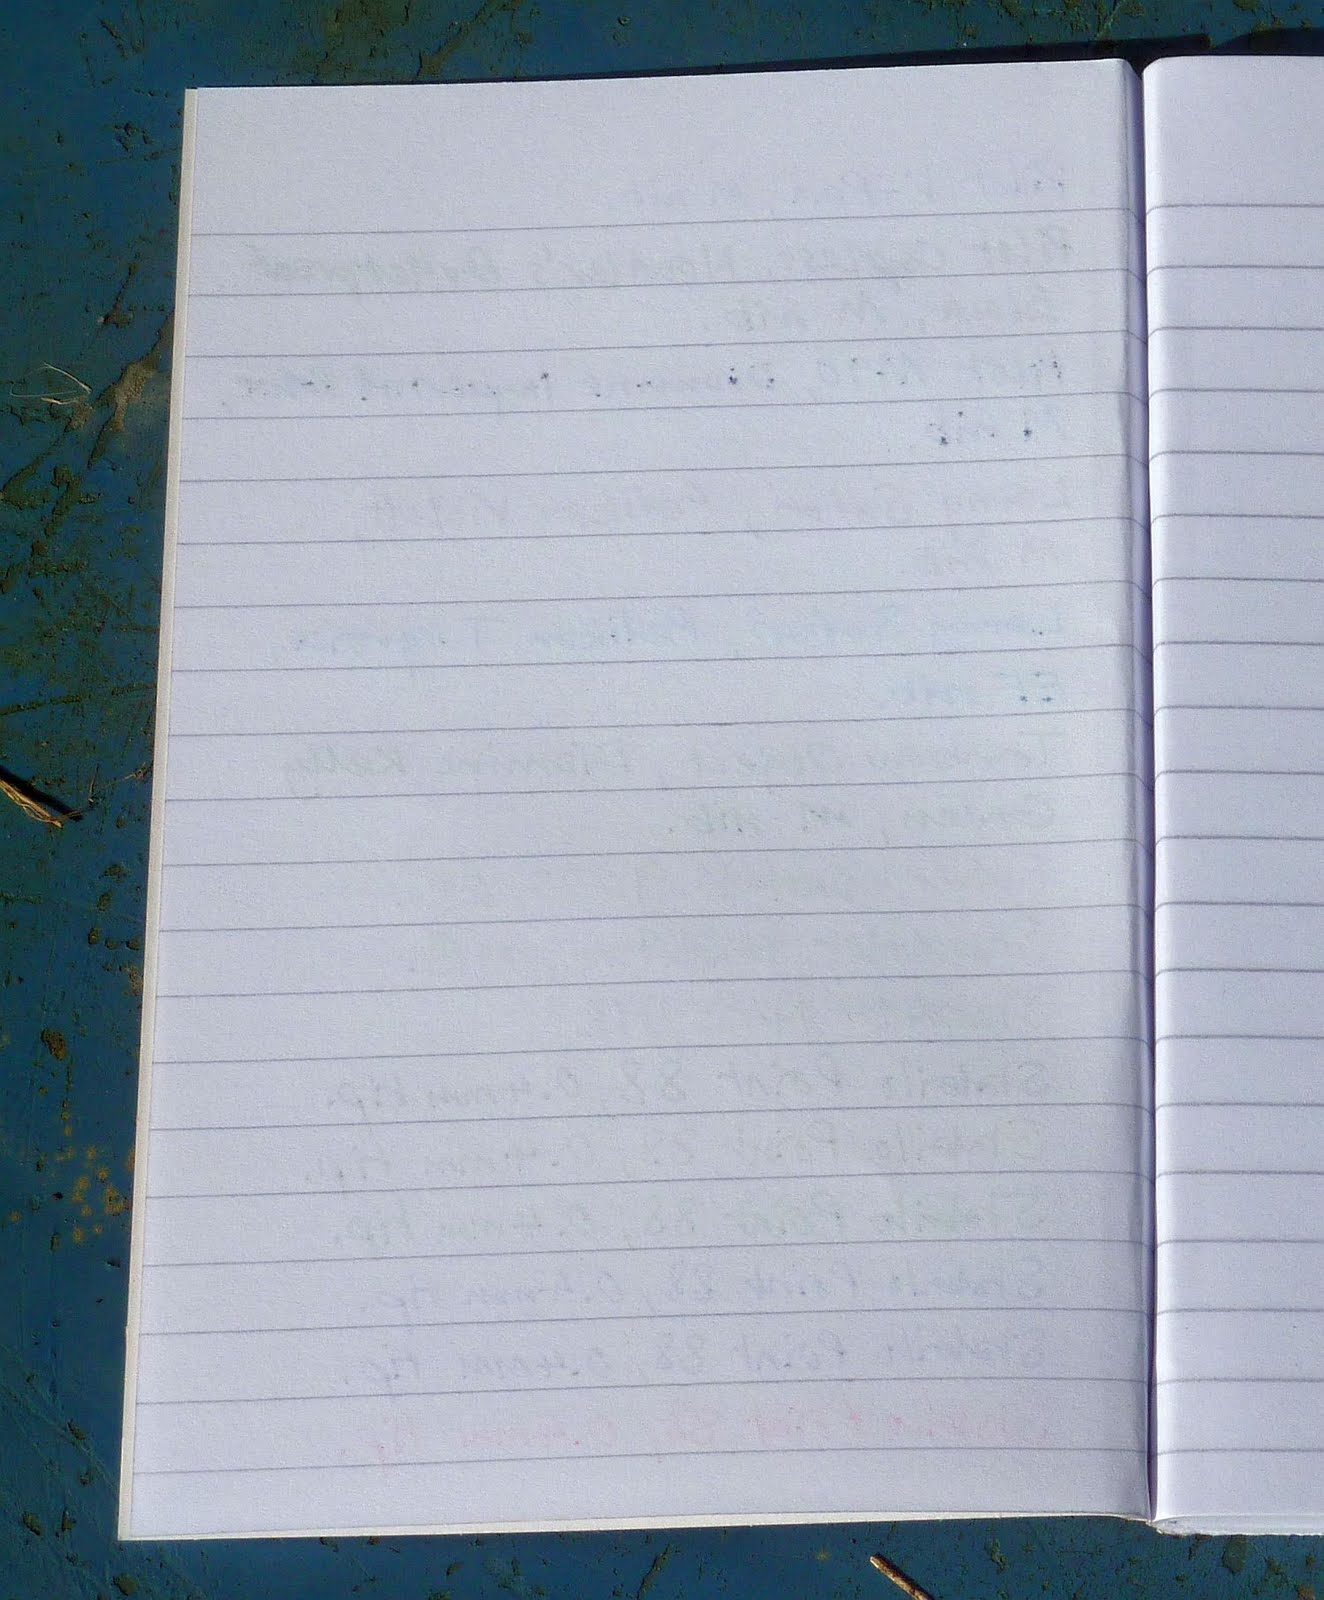 wide ruled notebook paper template .